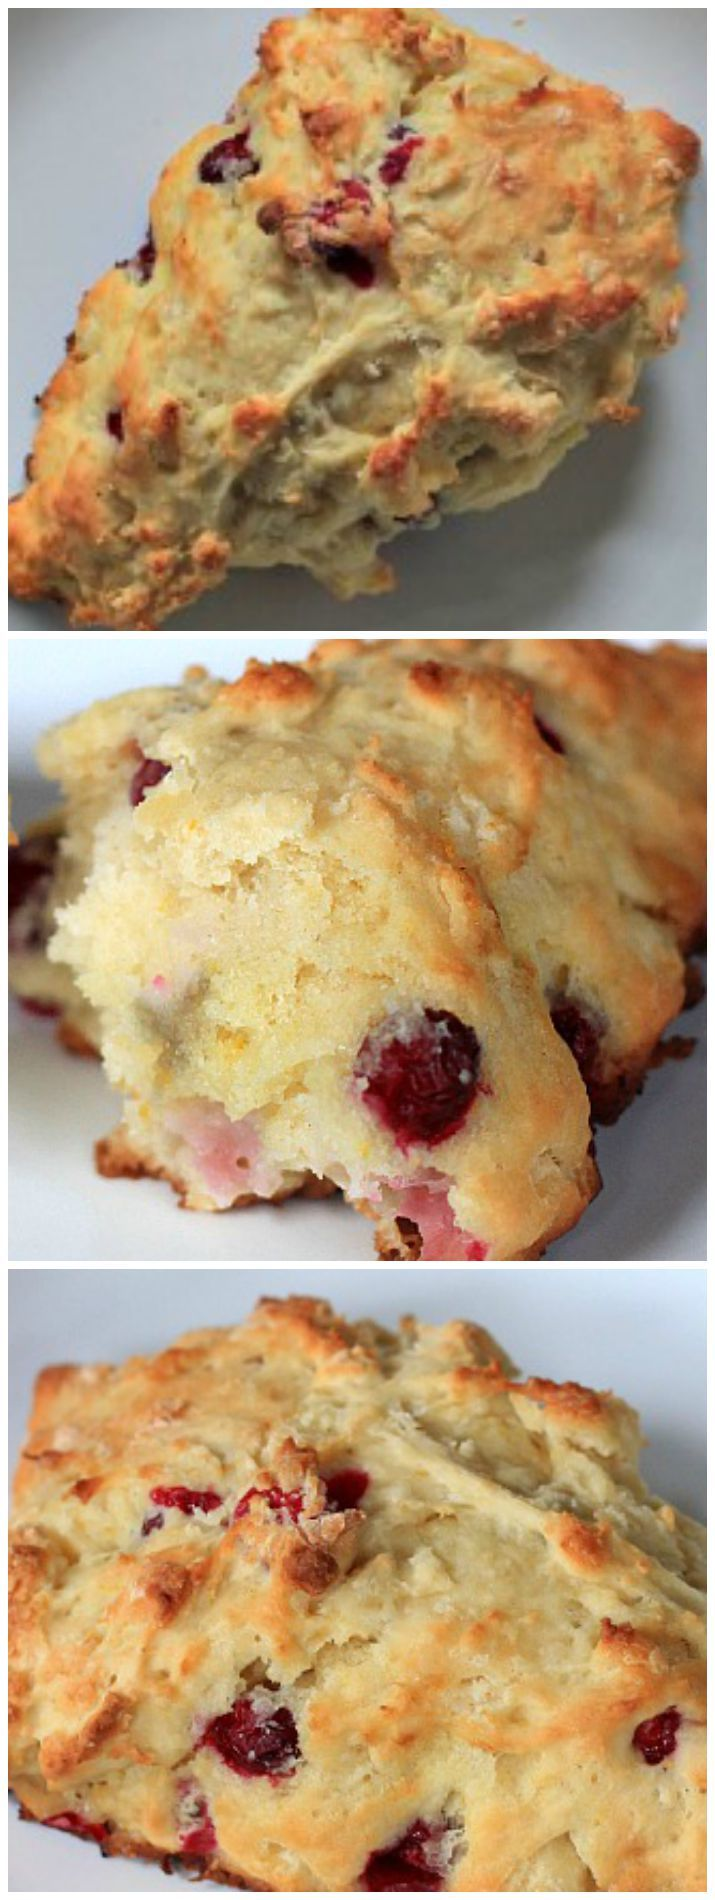 These Whole Wheat Cranberry Orange Scones have the perfect flavors! The tart cranberries and hint of orange will make you think its Christmas already!! | joyfulhealthyeats.com